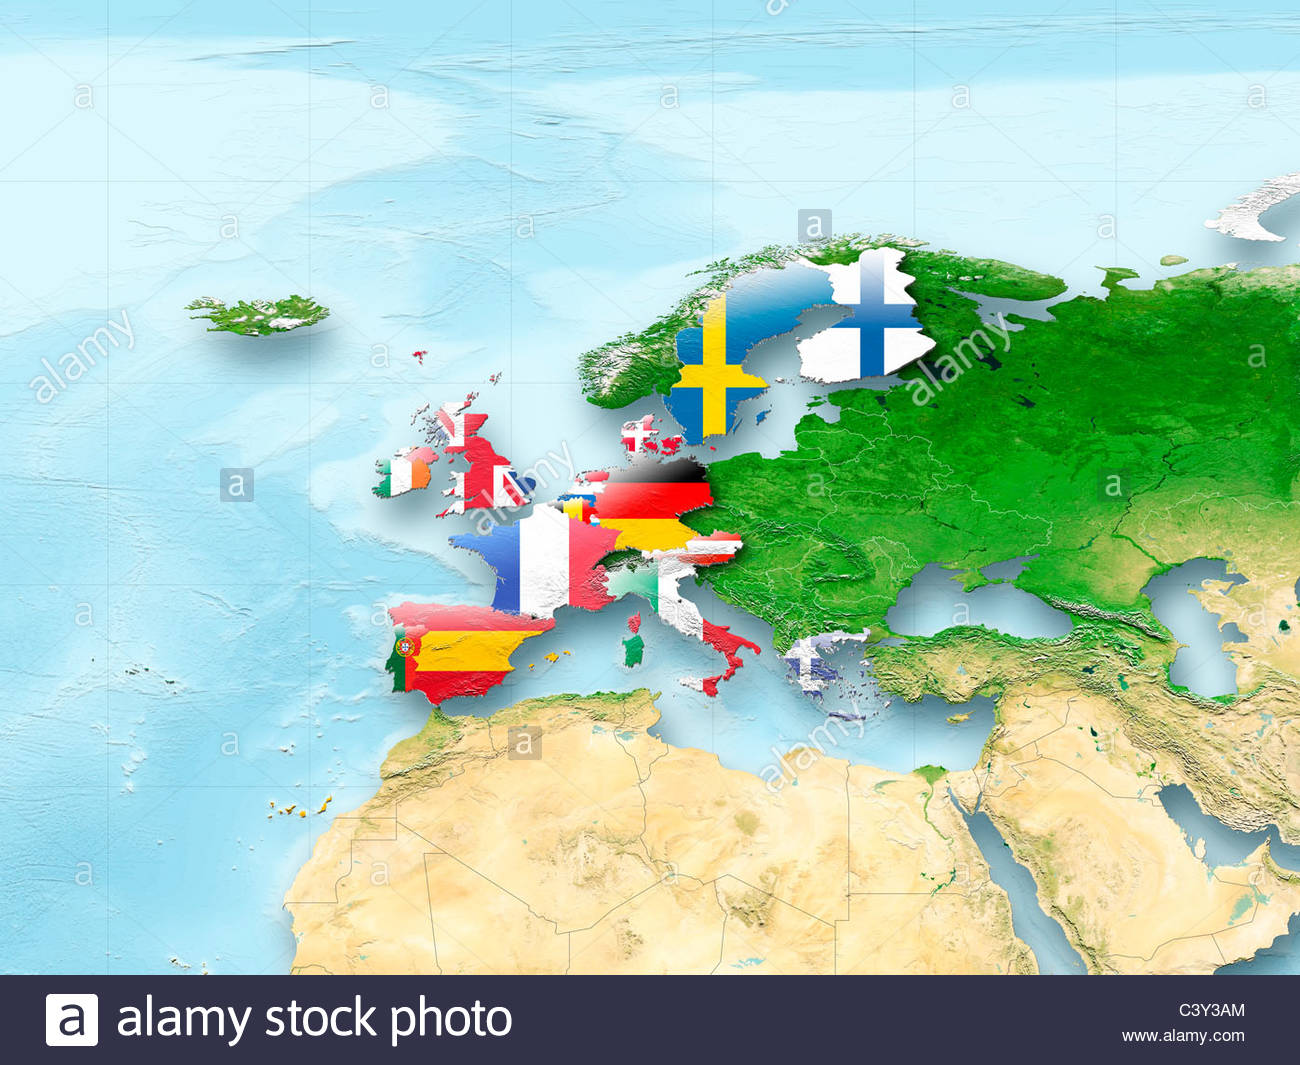 Map Western Europe Flags European Stock Photos & Map Western Europe ...